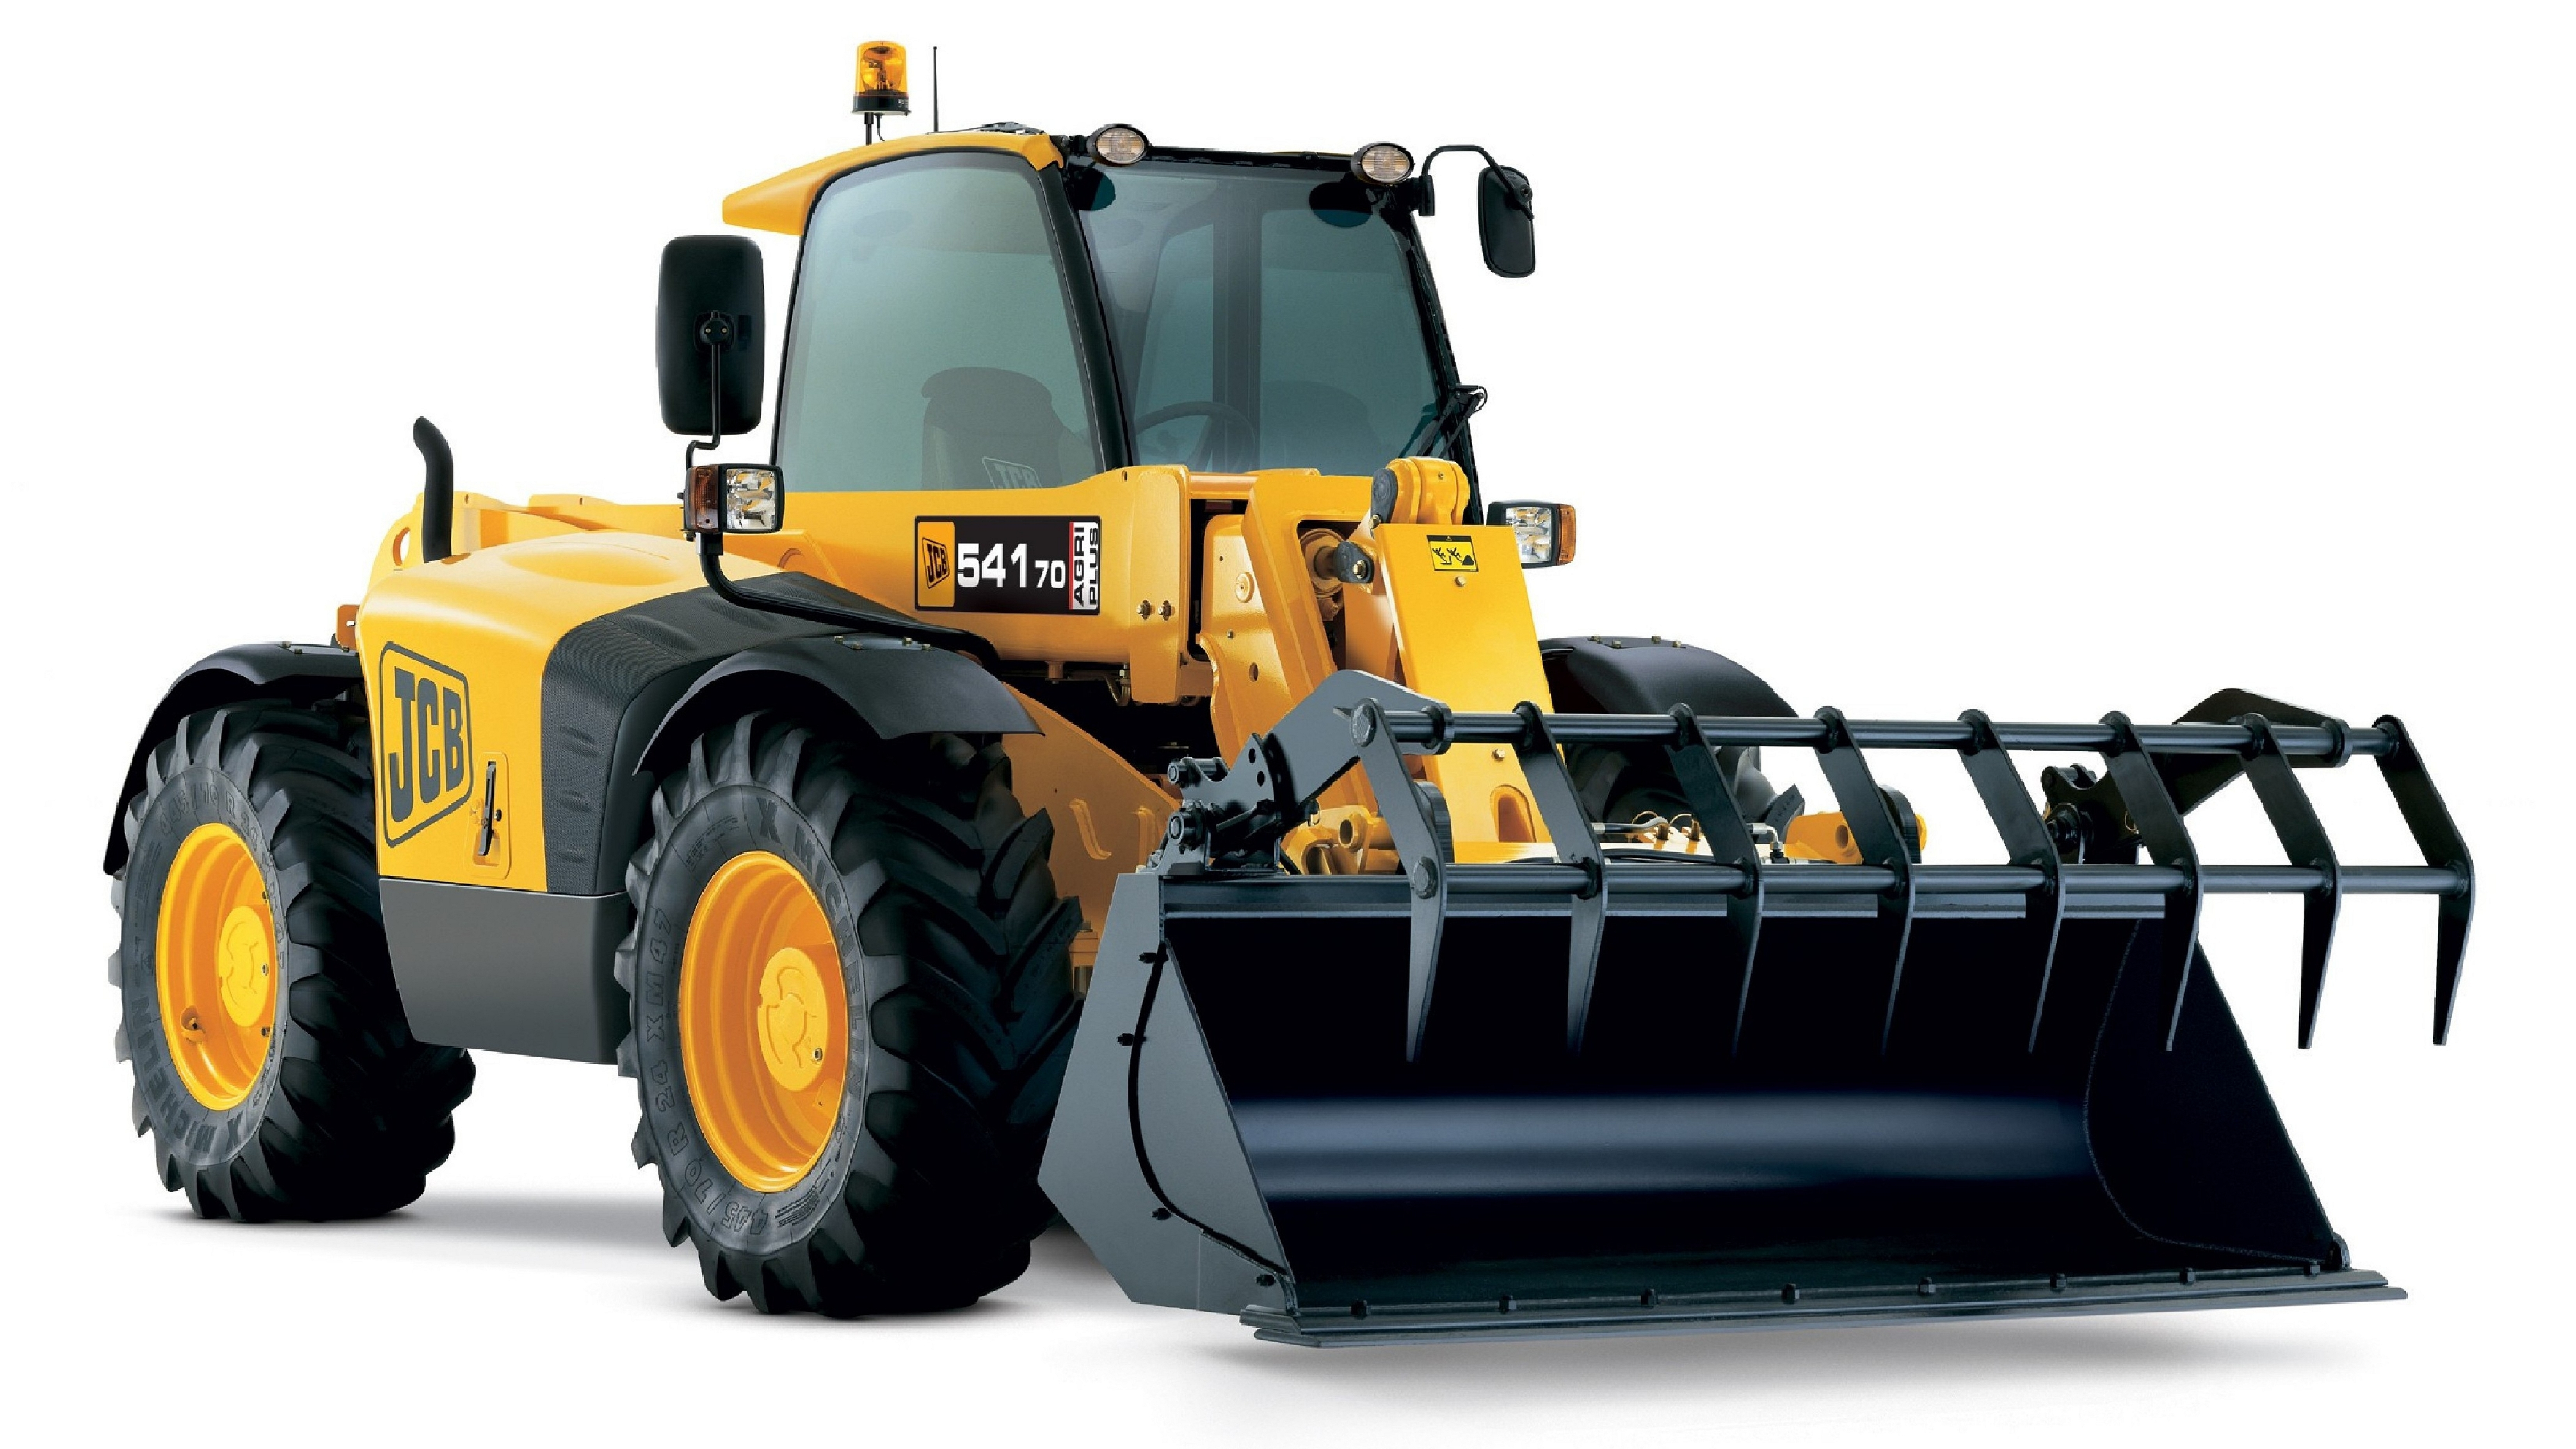 1 JCB Loadall HD Wallpapers | Backgrounds - Wallpaper Abyss